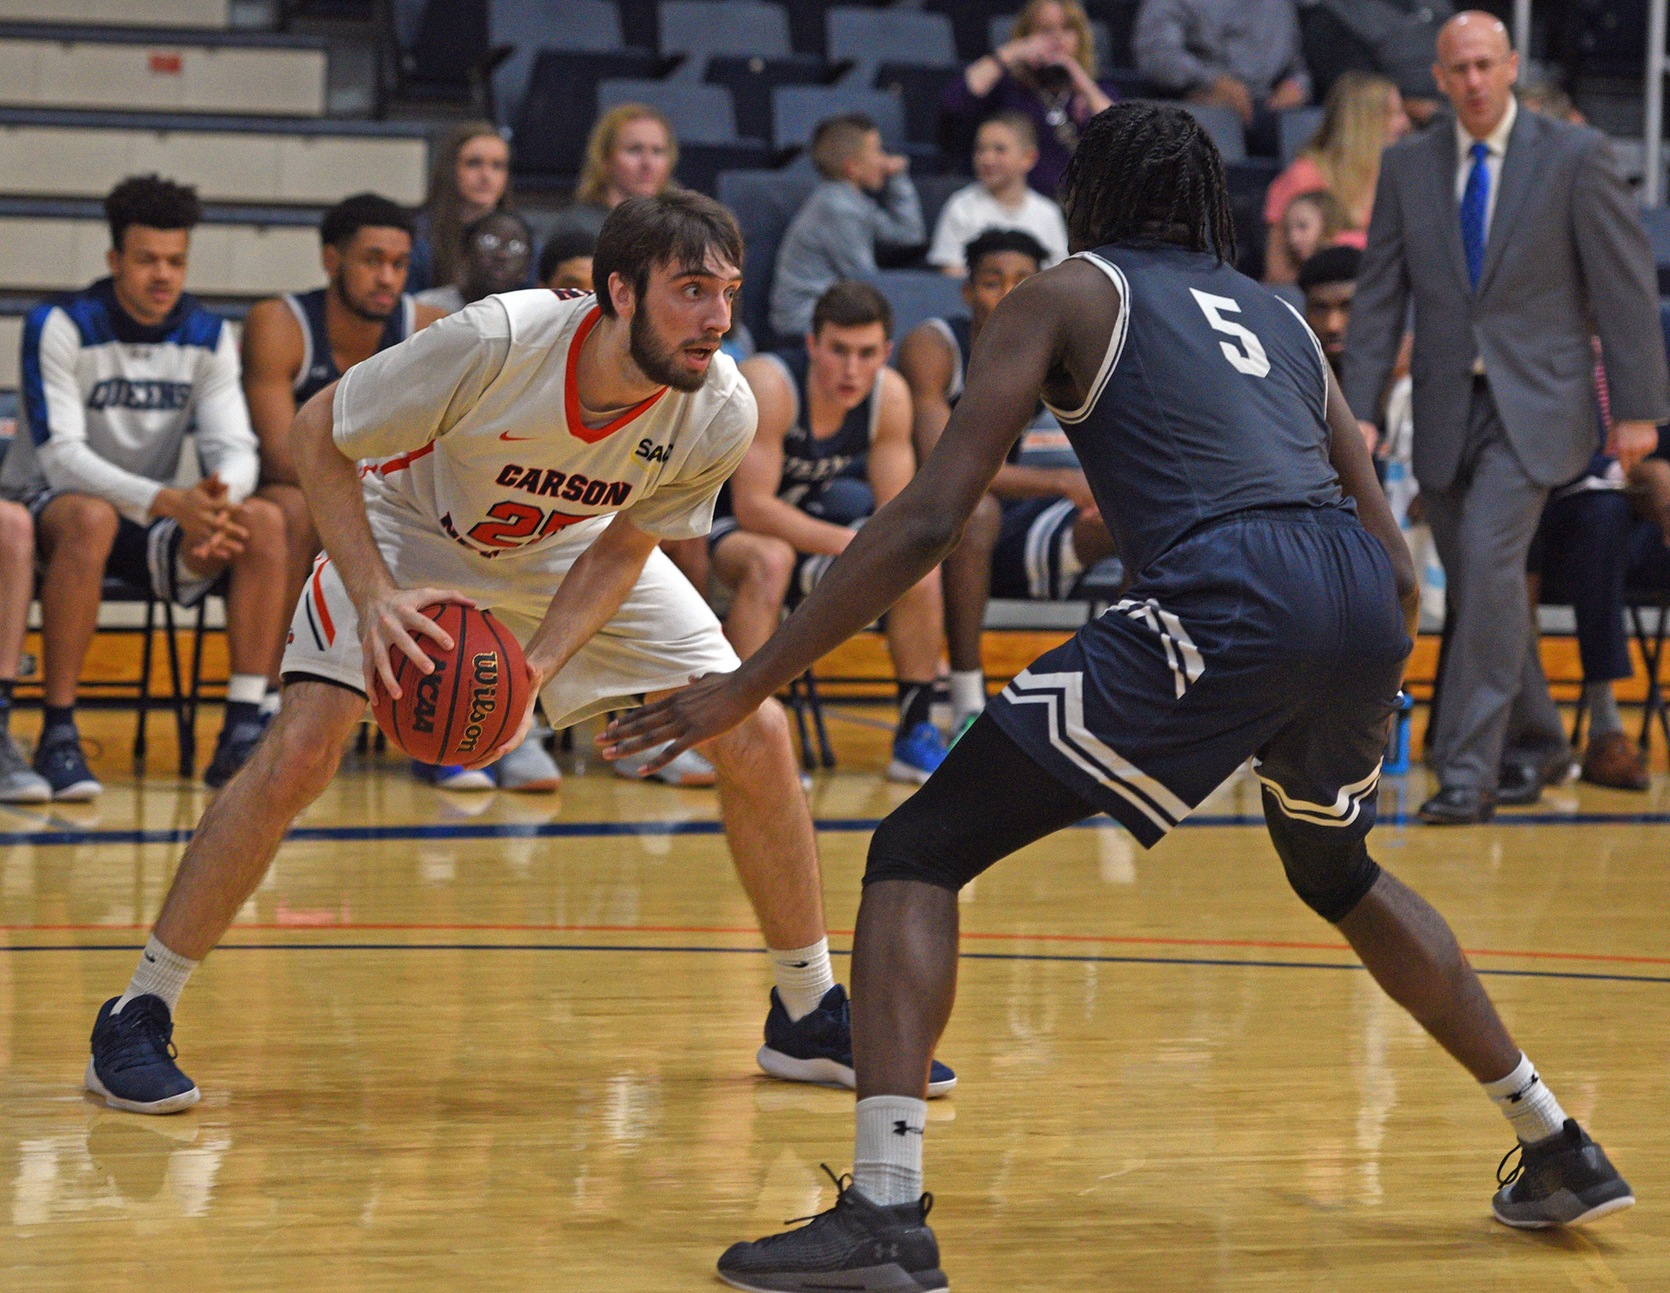 Top-seeded, ninth-ranked Queens awaits Carson-Newman in opening round of Pilot/Flying J SAC Basketball Tournament